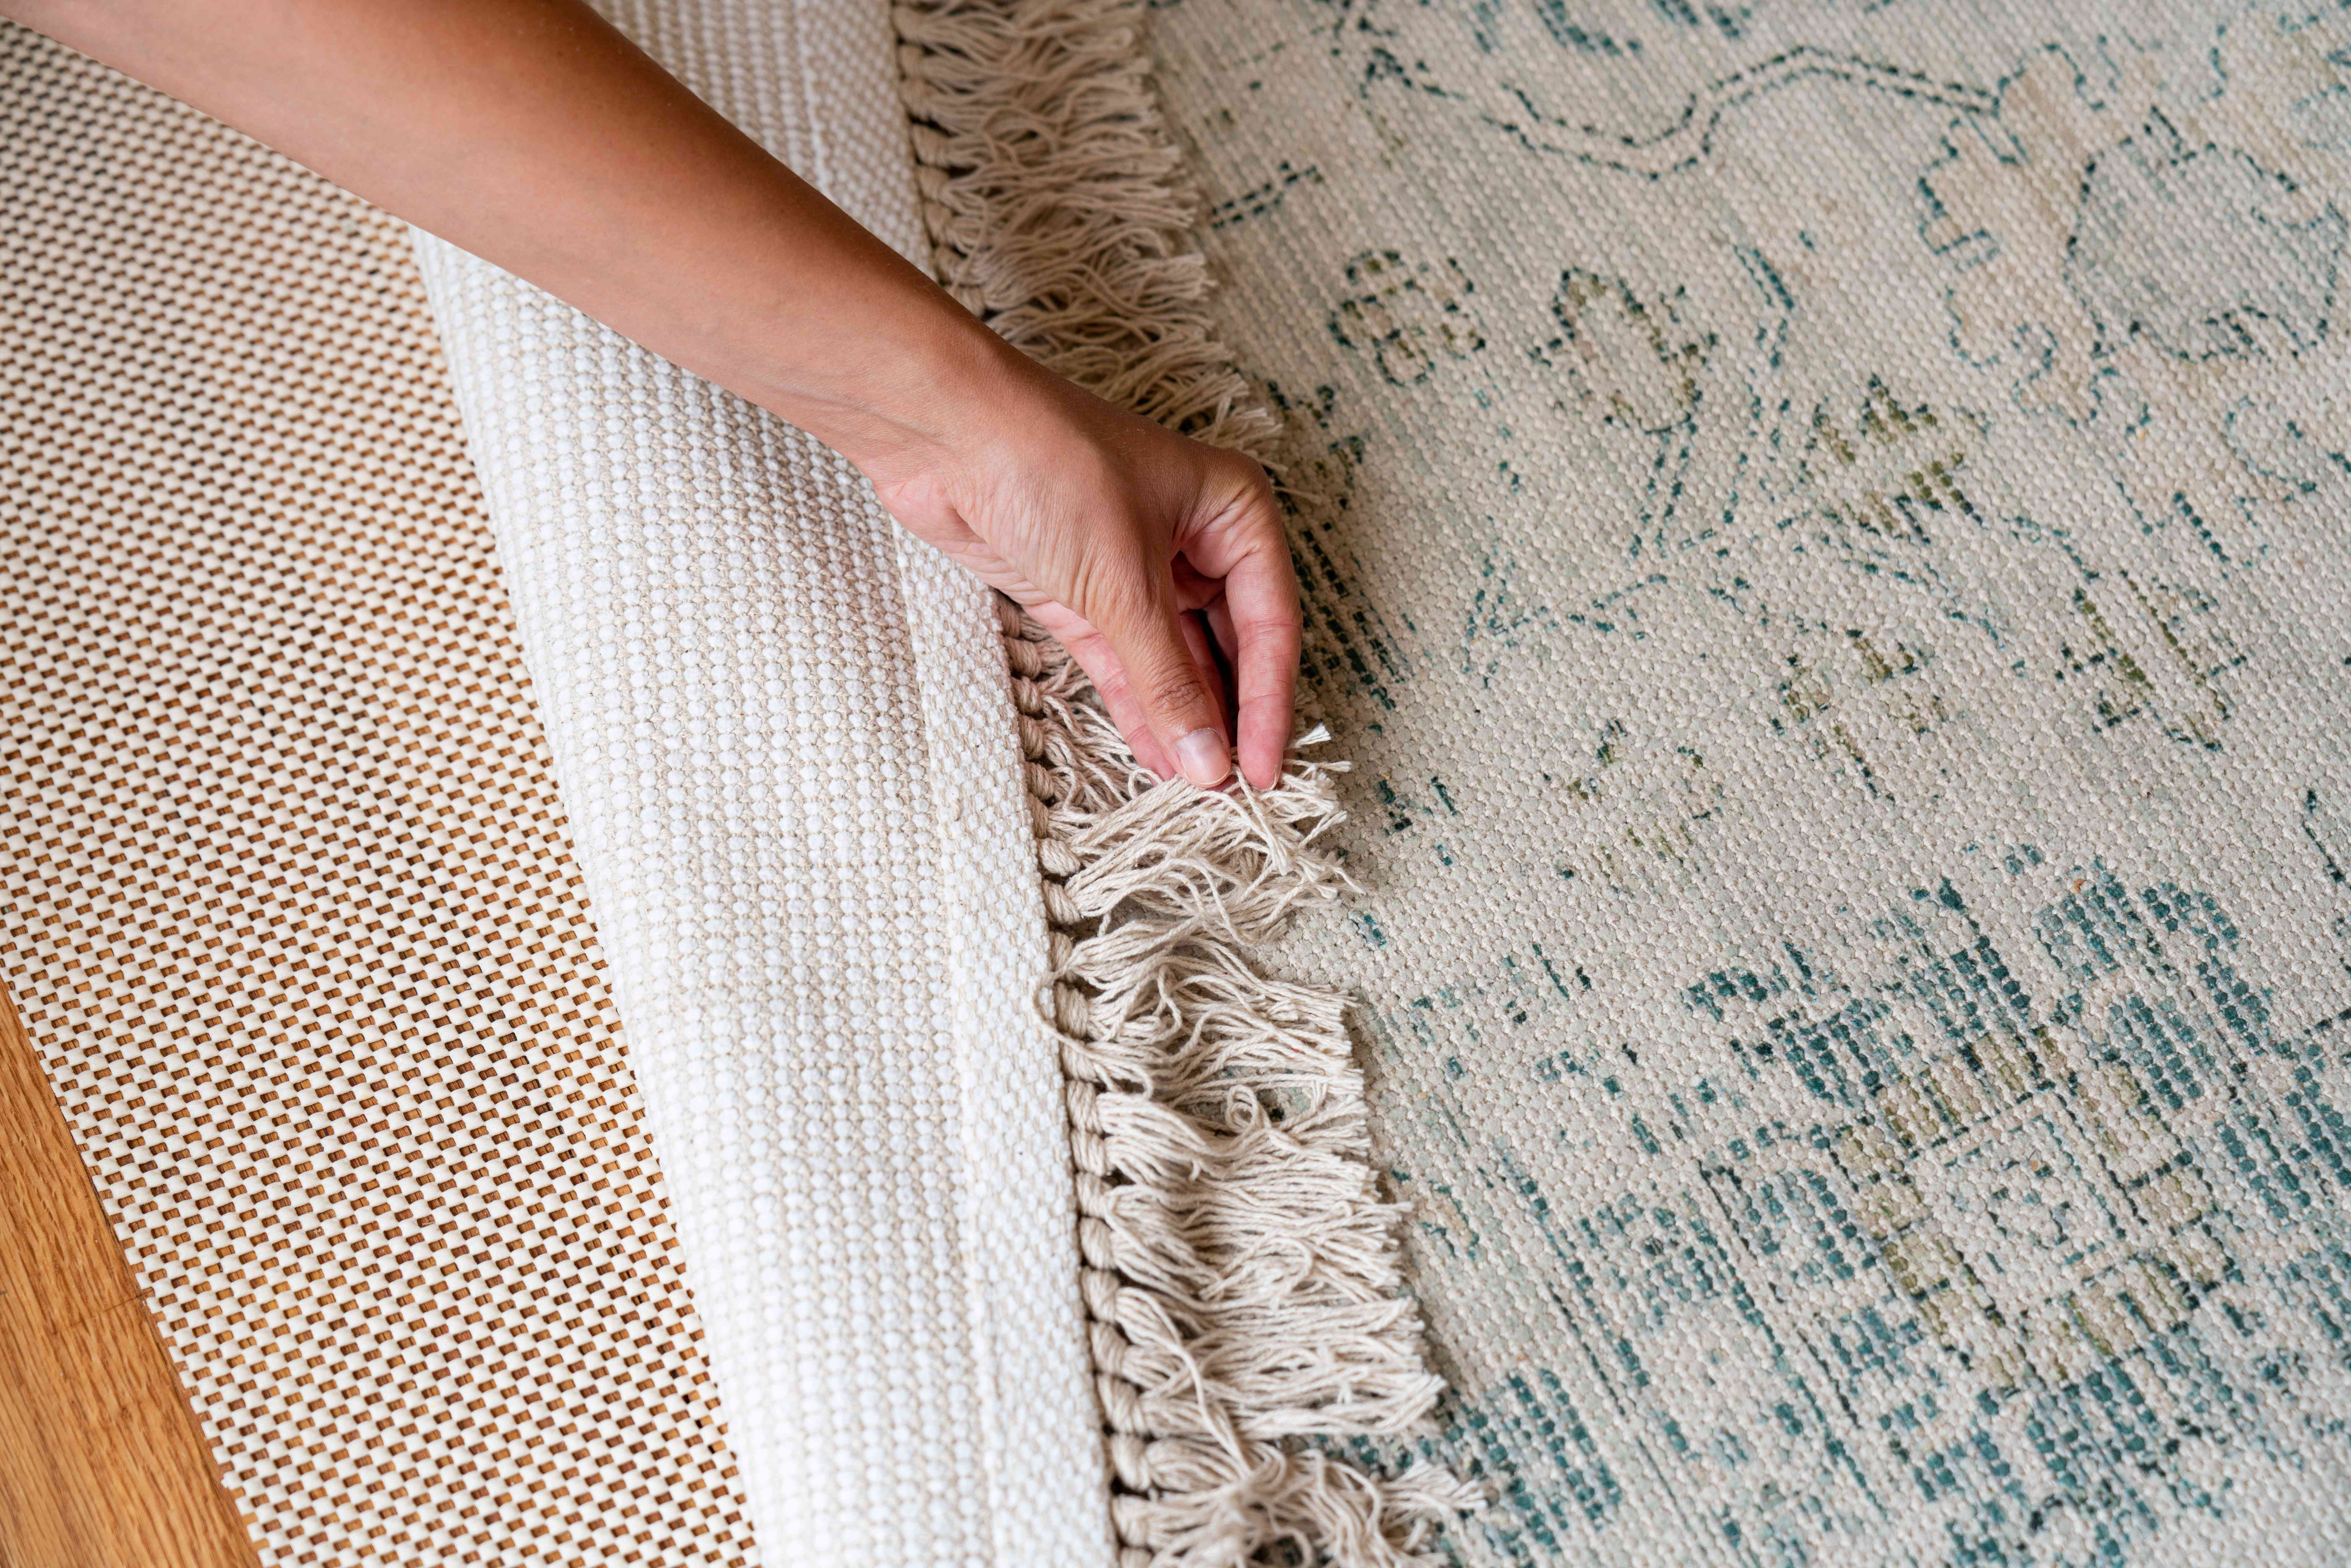 Tan and blue hand-knotted rug flipped over to show hand-made pattern